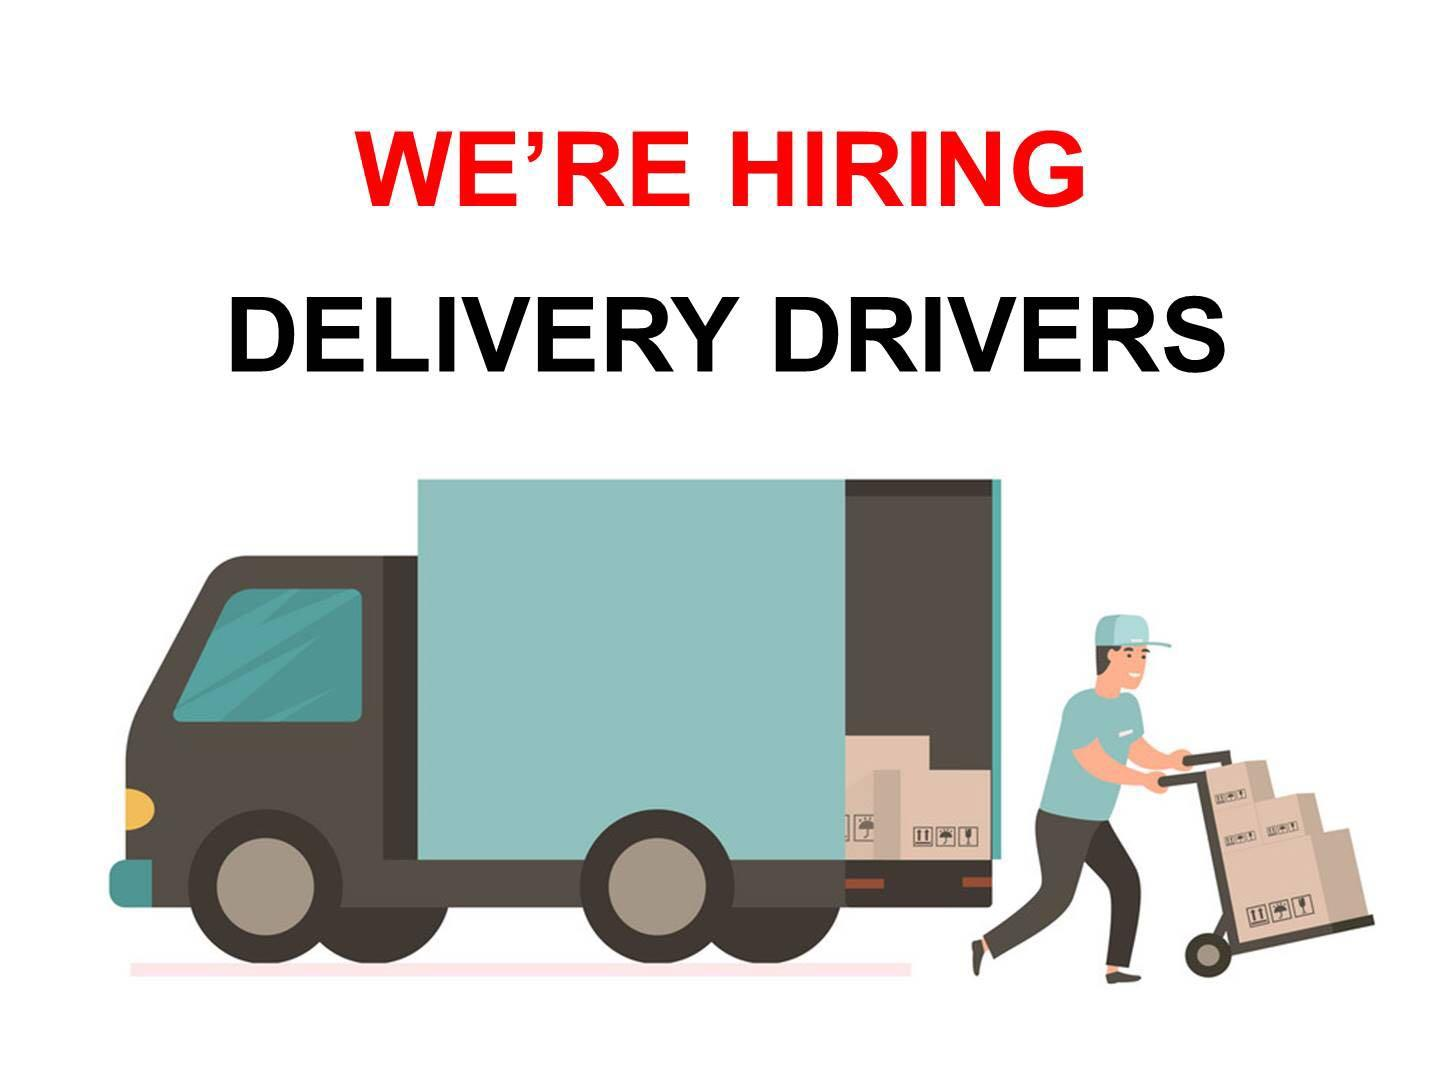 Looking for Class 3 driver